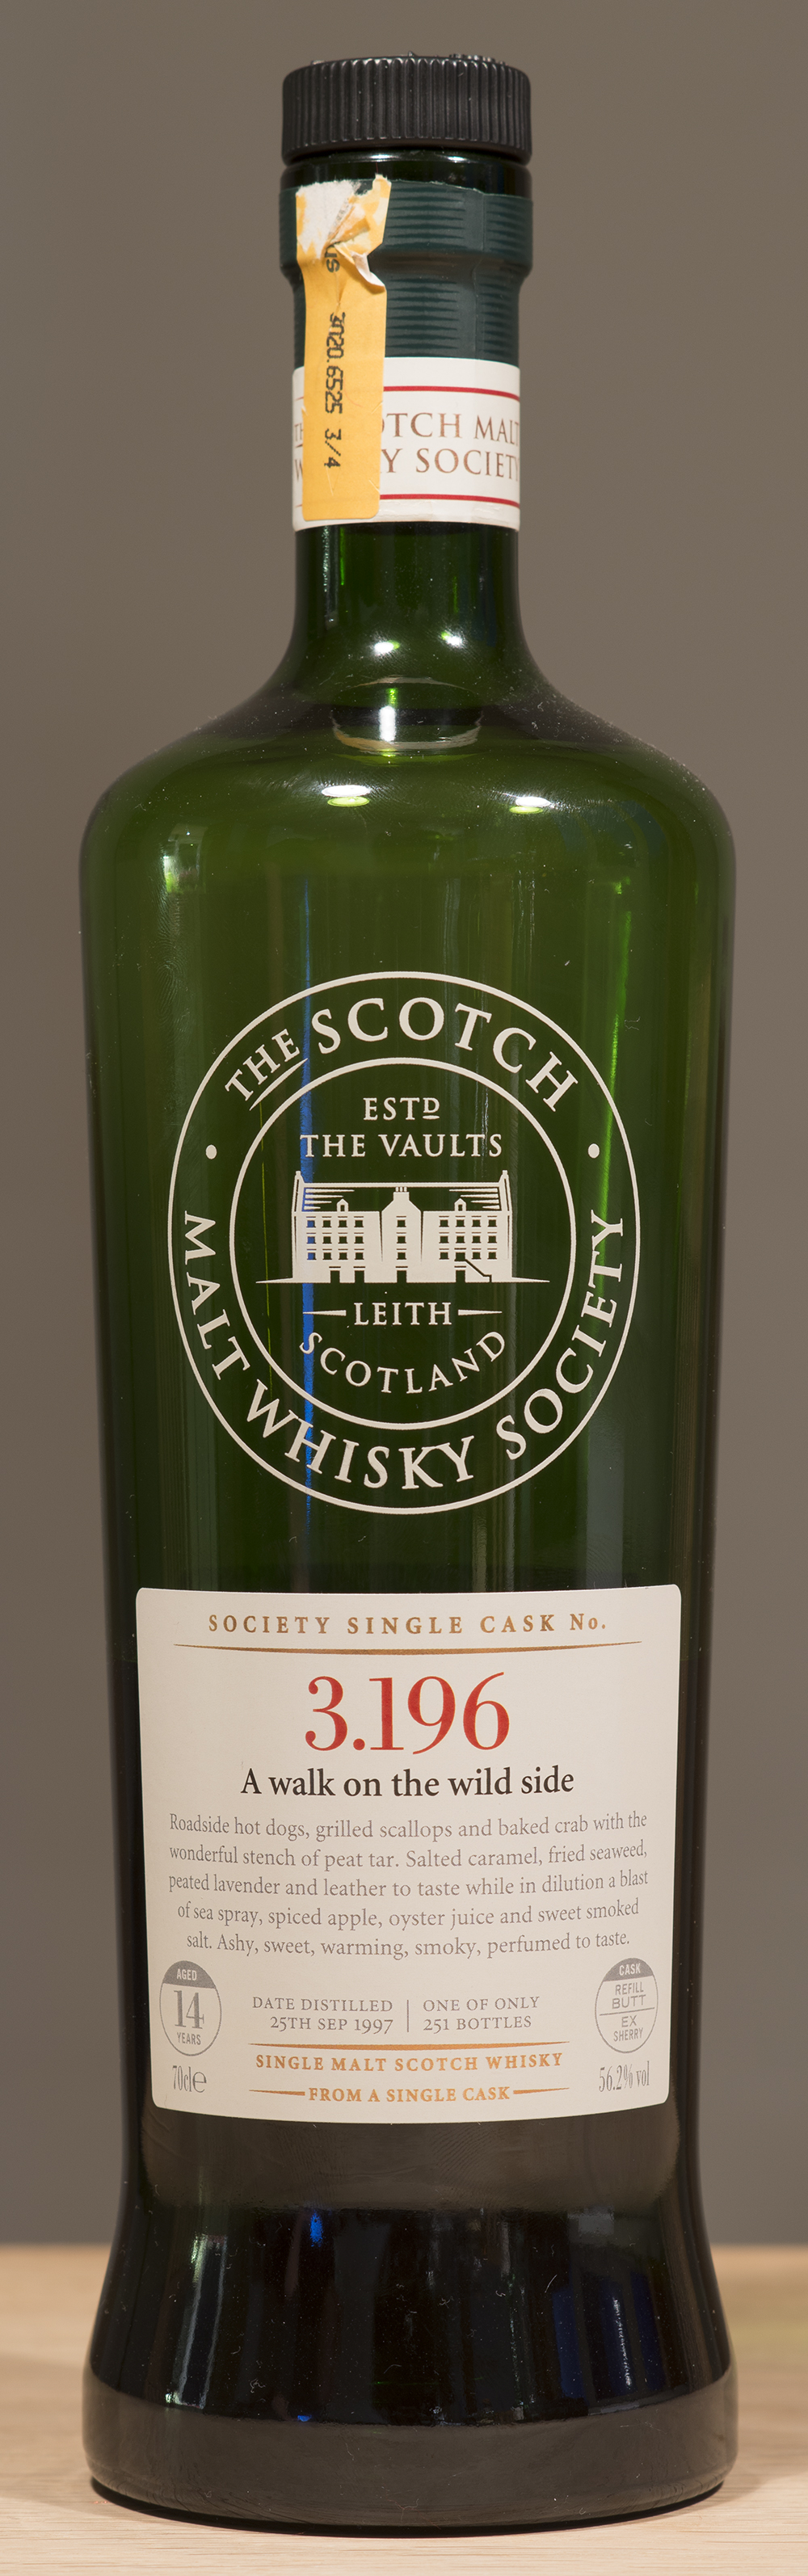 Billede: DSC_0250 SMWS 3.196 - A walk on the wild side.jpg